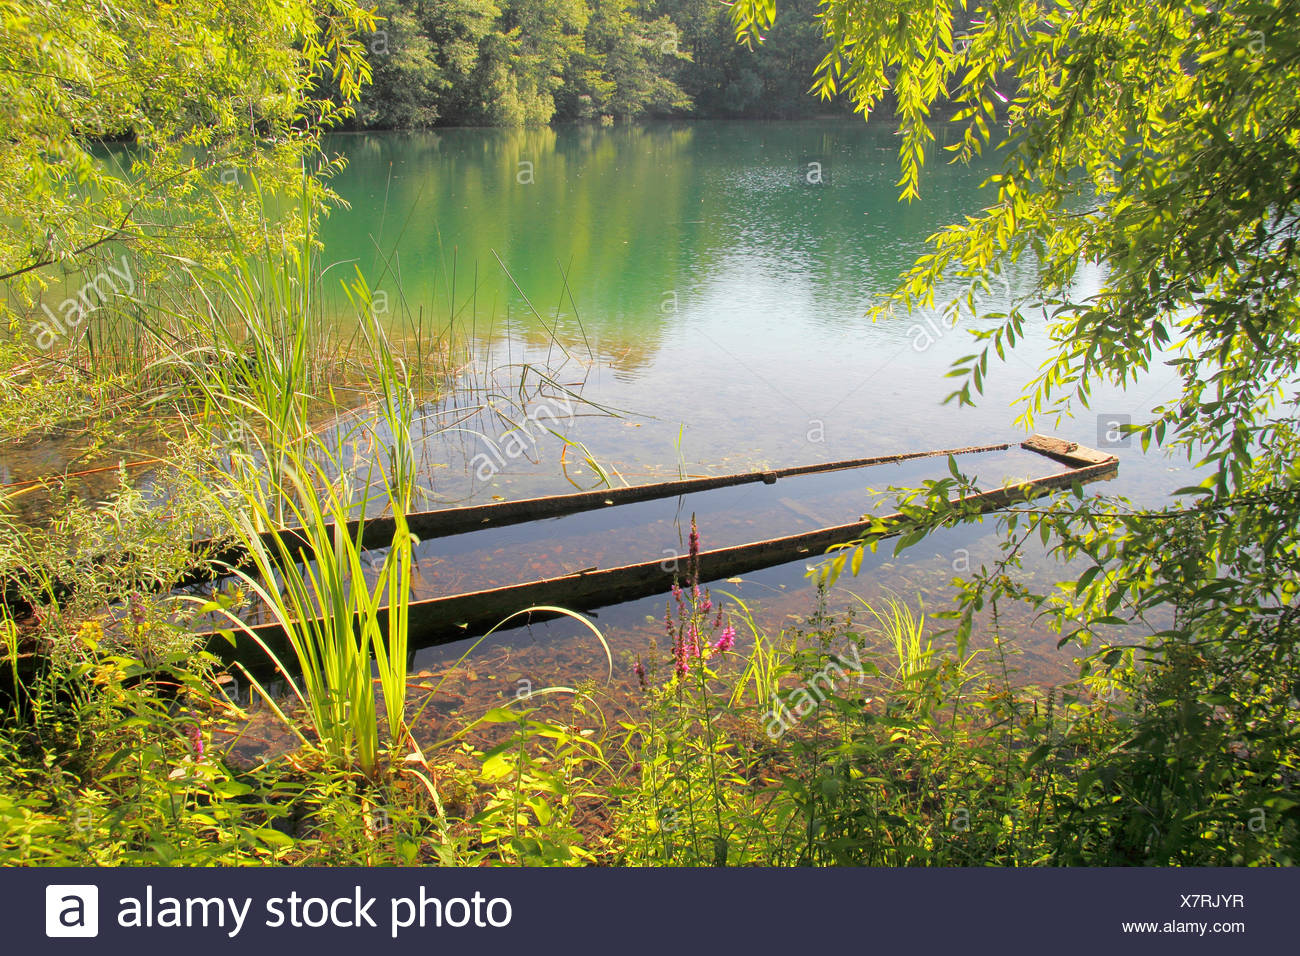 view onto a lake with a overflowed bark, Germany, Baden-Wuerttemberg, Ortenau - Stock Image